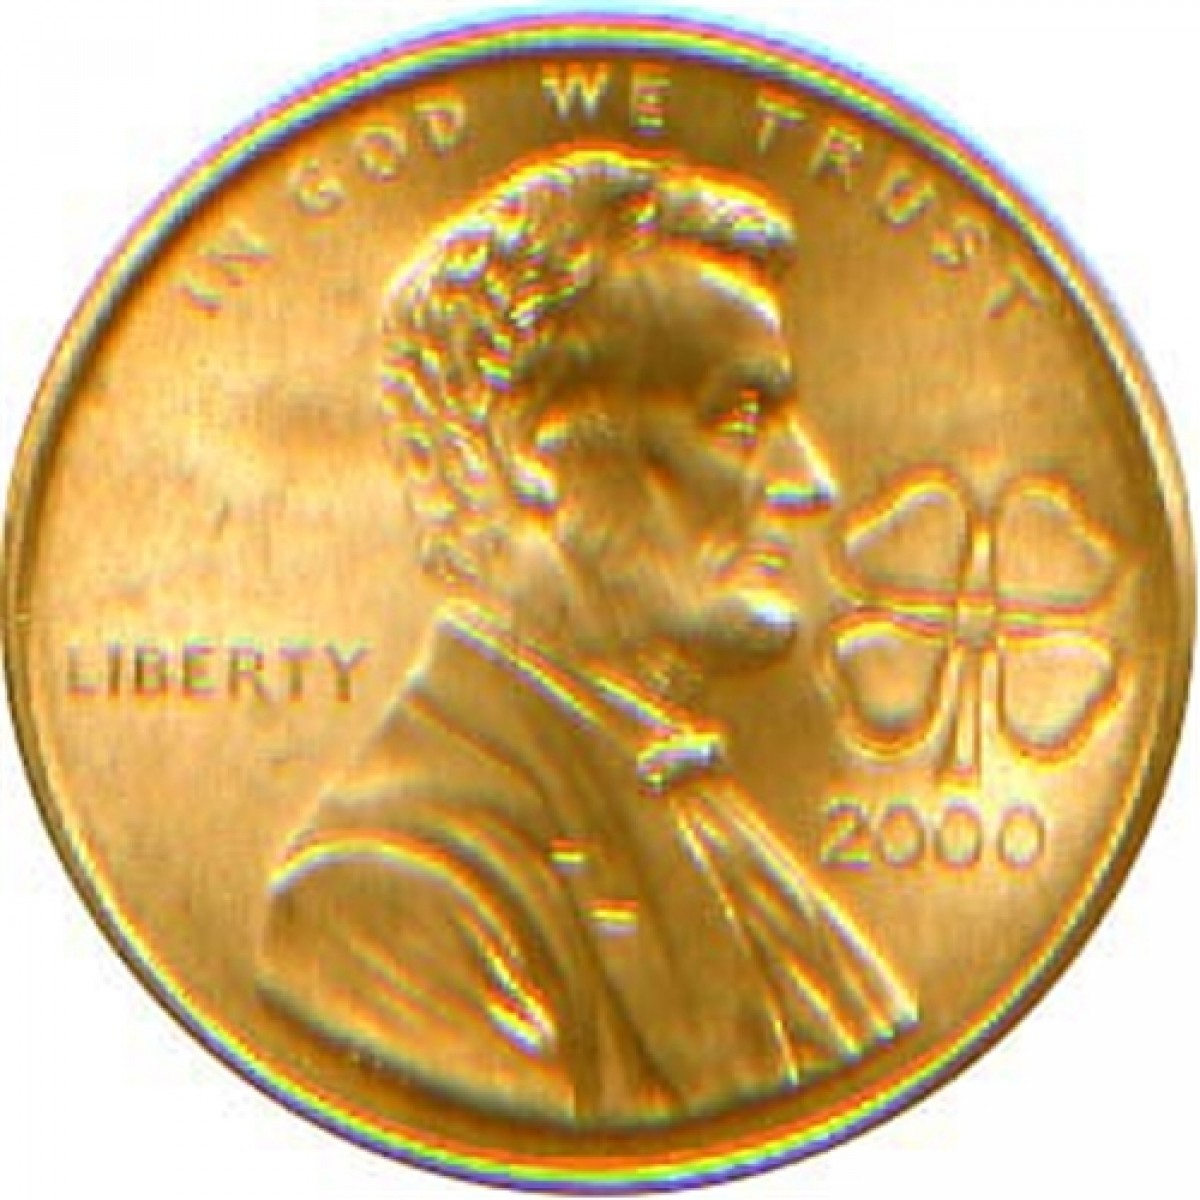 Image result for lucky penny